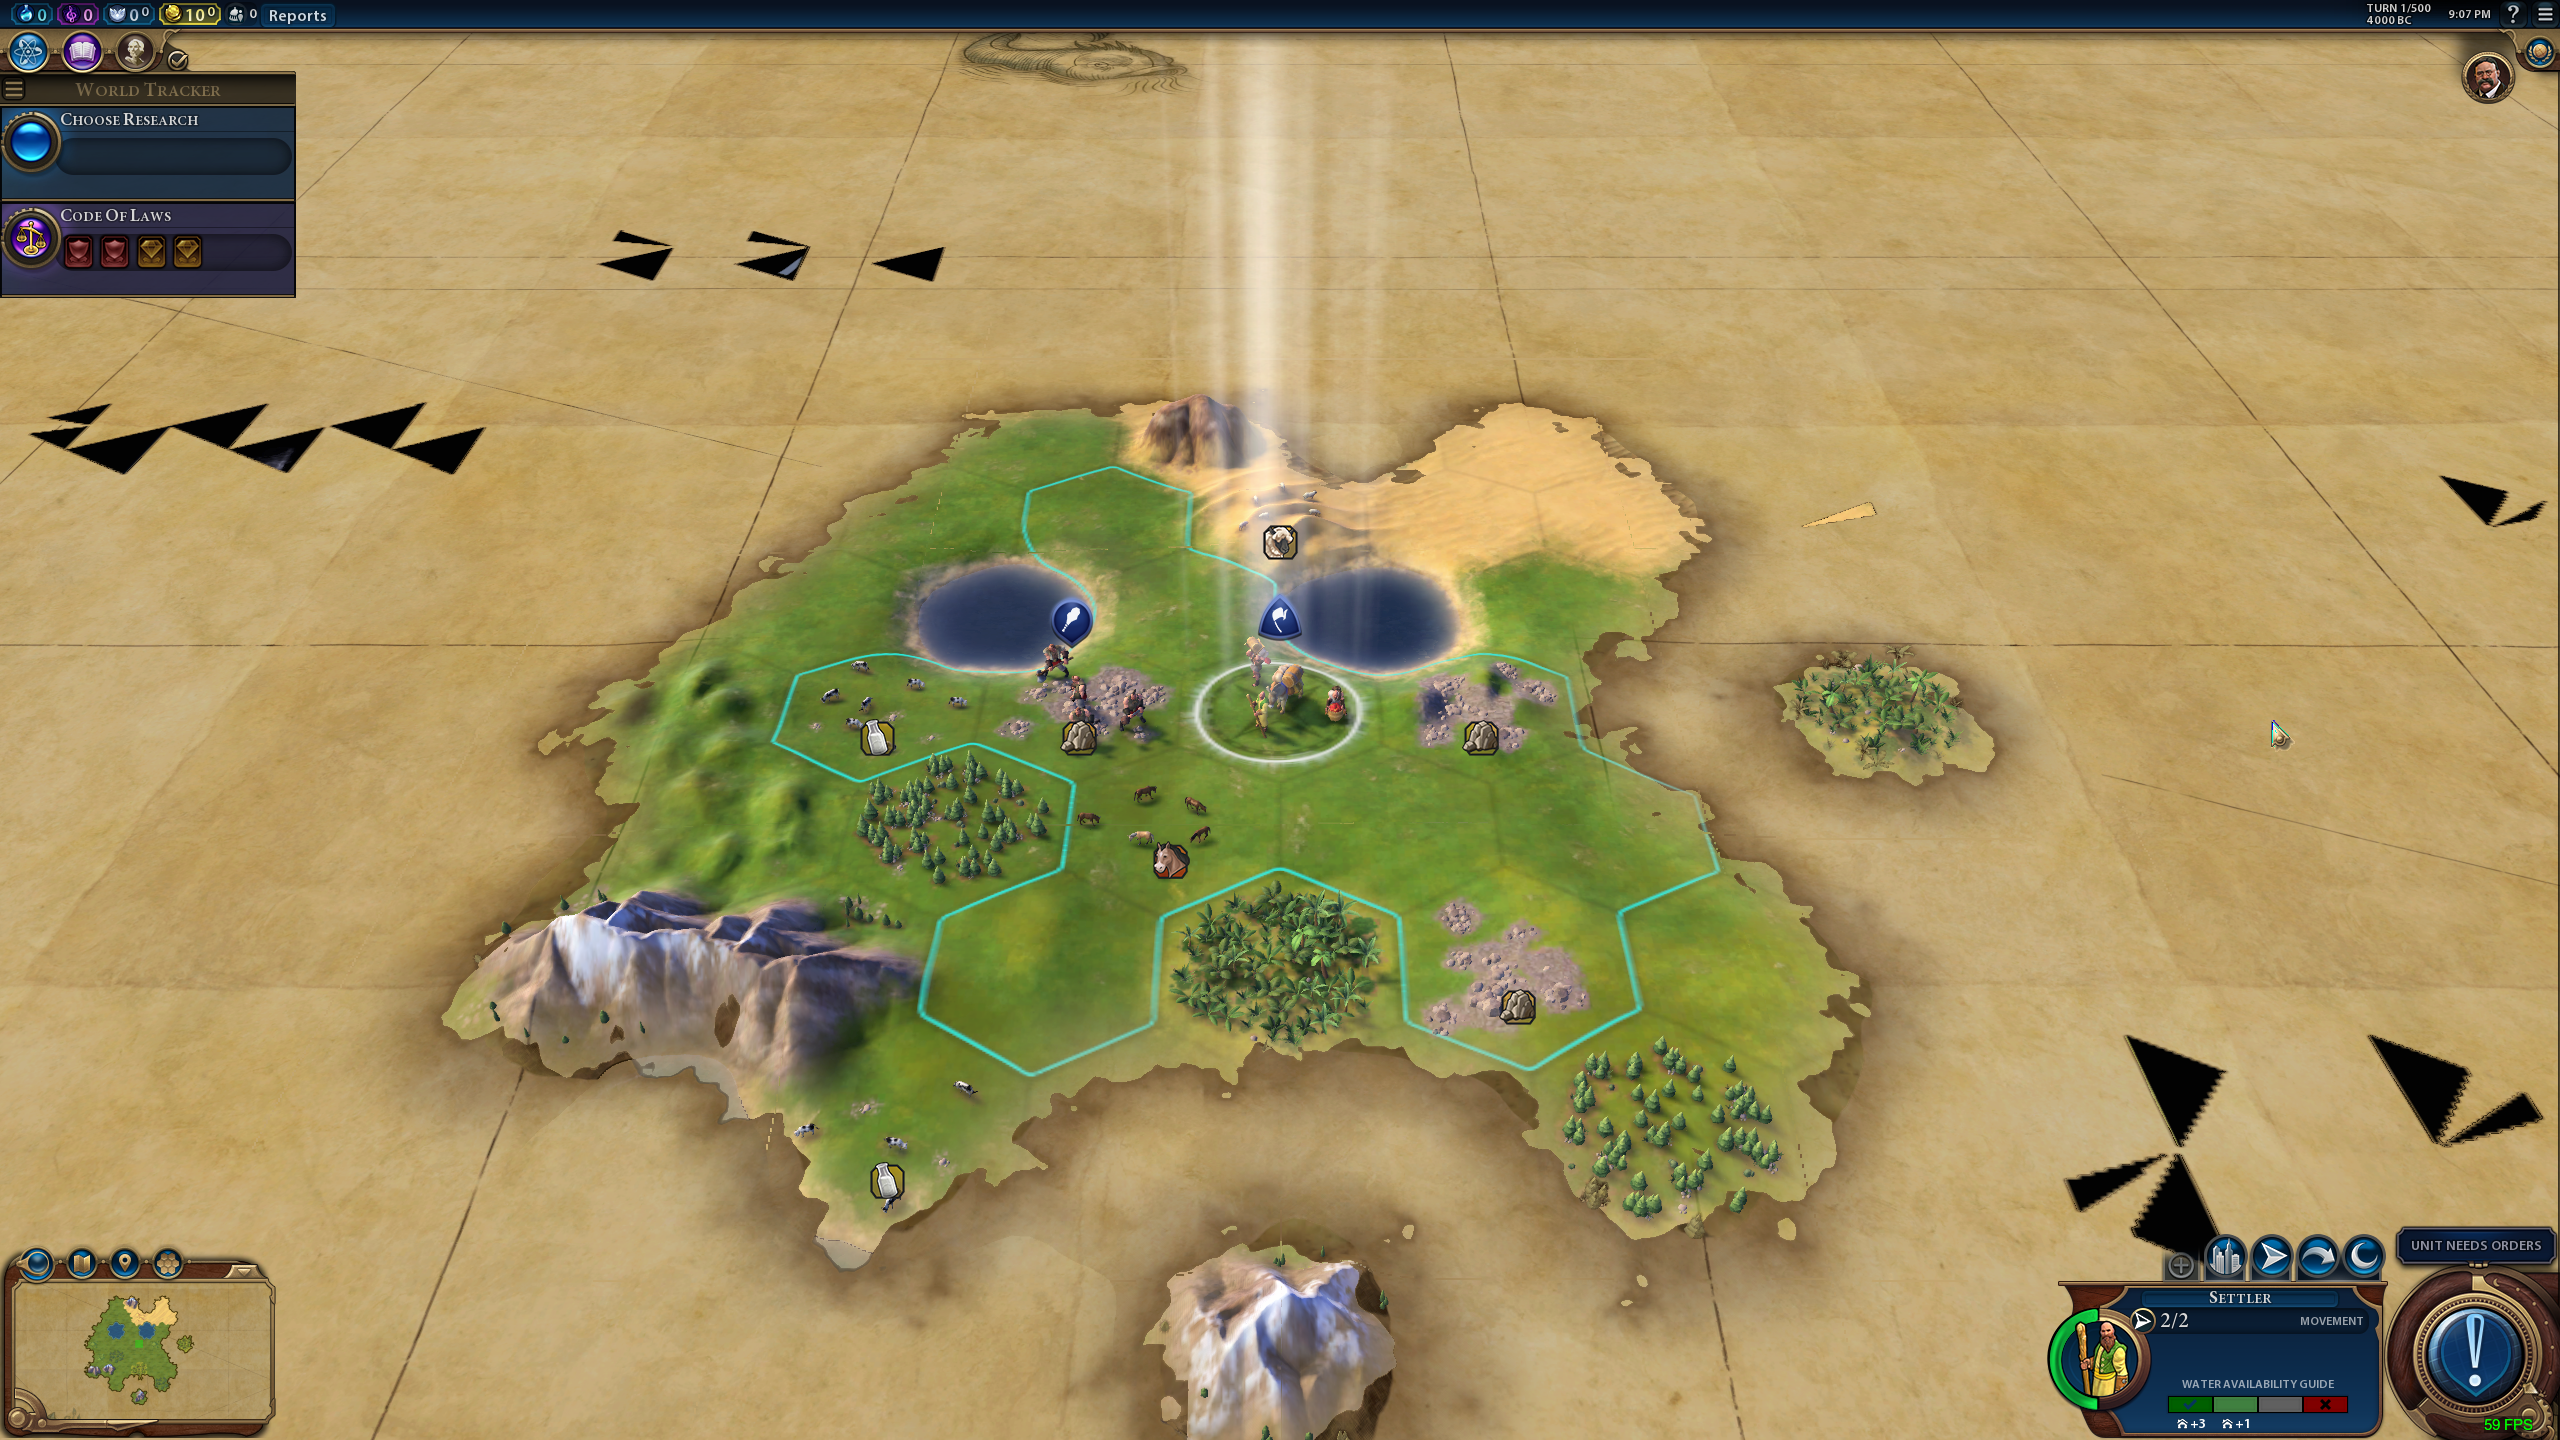 104602 – [apitrace] Graphical artifacts in Civilization VI